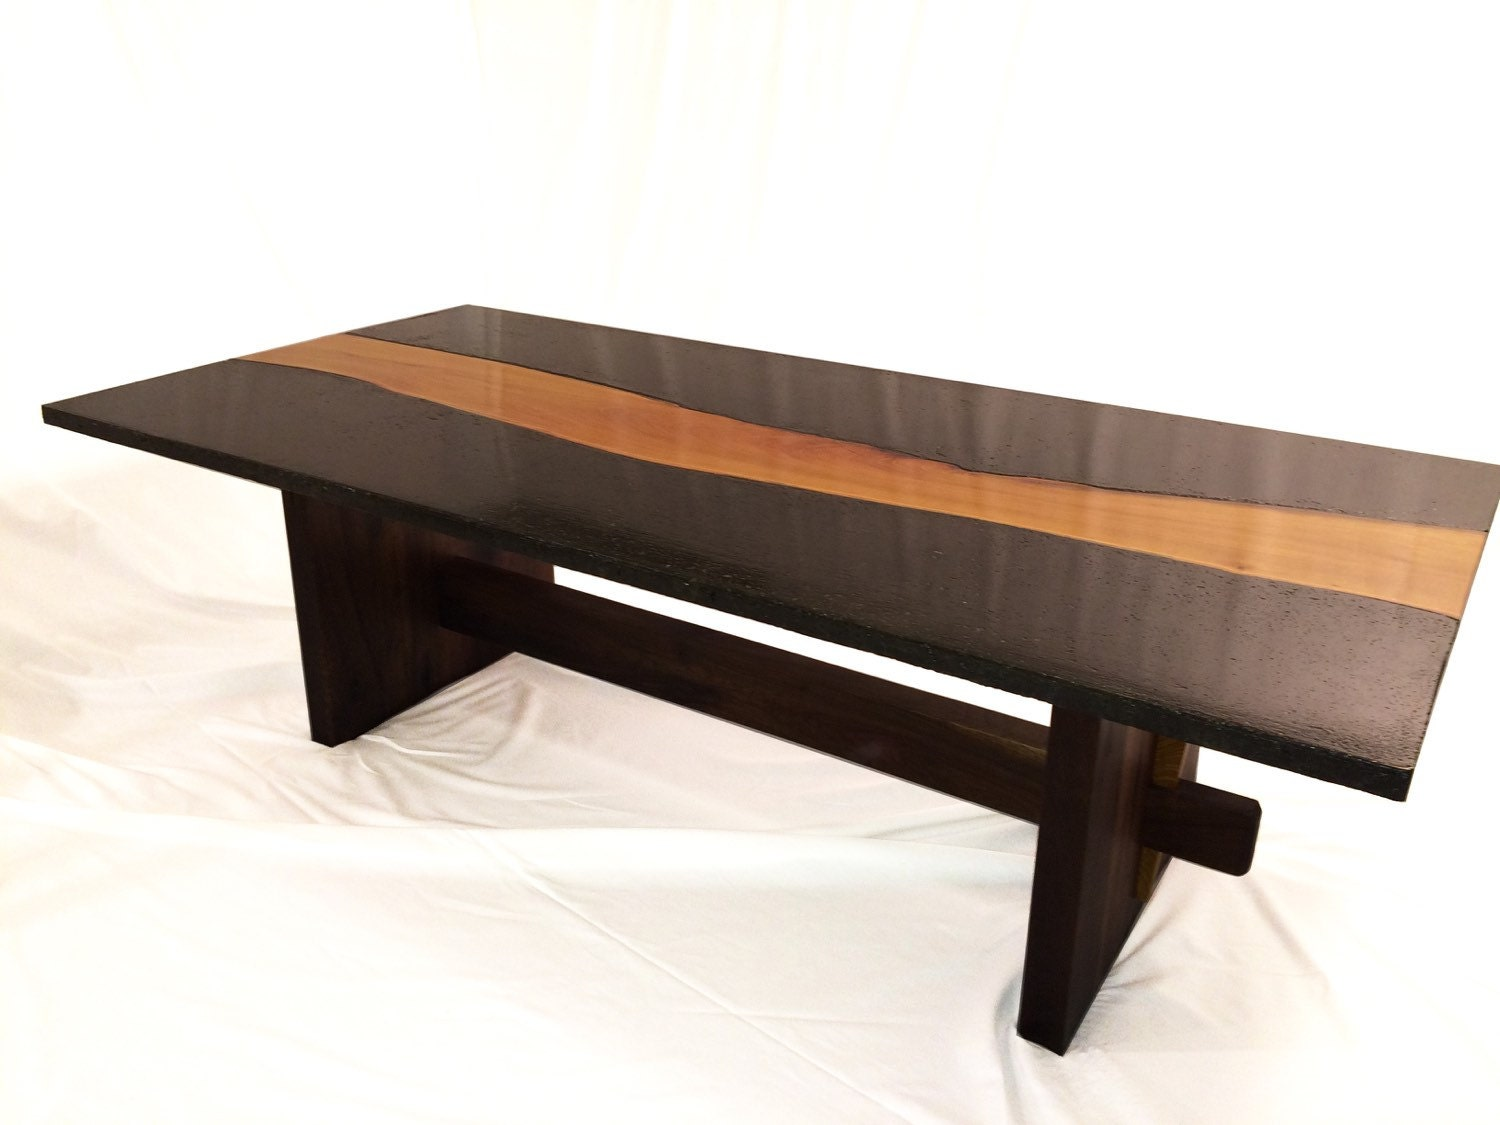 Live edge wood concrete coffee table concrete osage orange Live wood coffee table